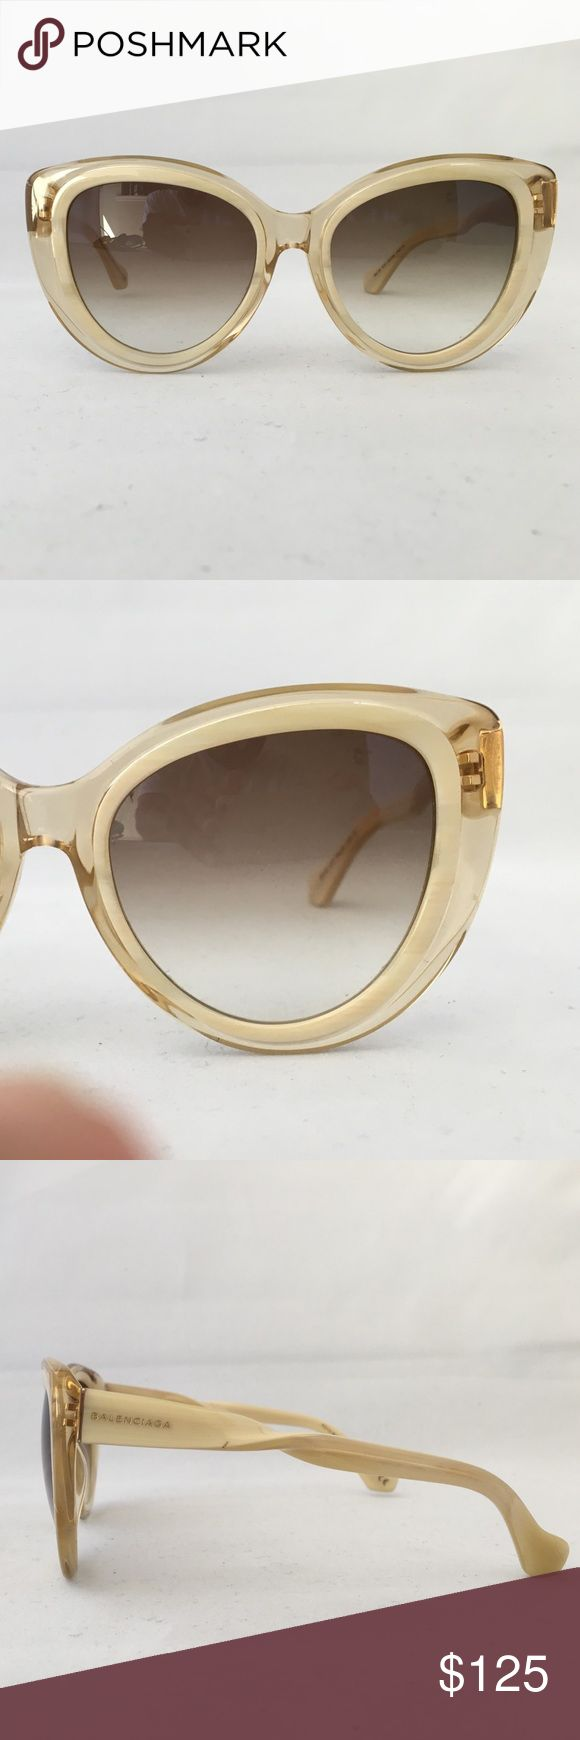 Balenciaga sunglasses Balenciaga Sunglasses new but will not ship with original case very fashionable Balenciaga Accessories Sunglasses